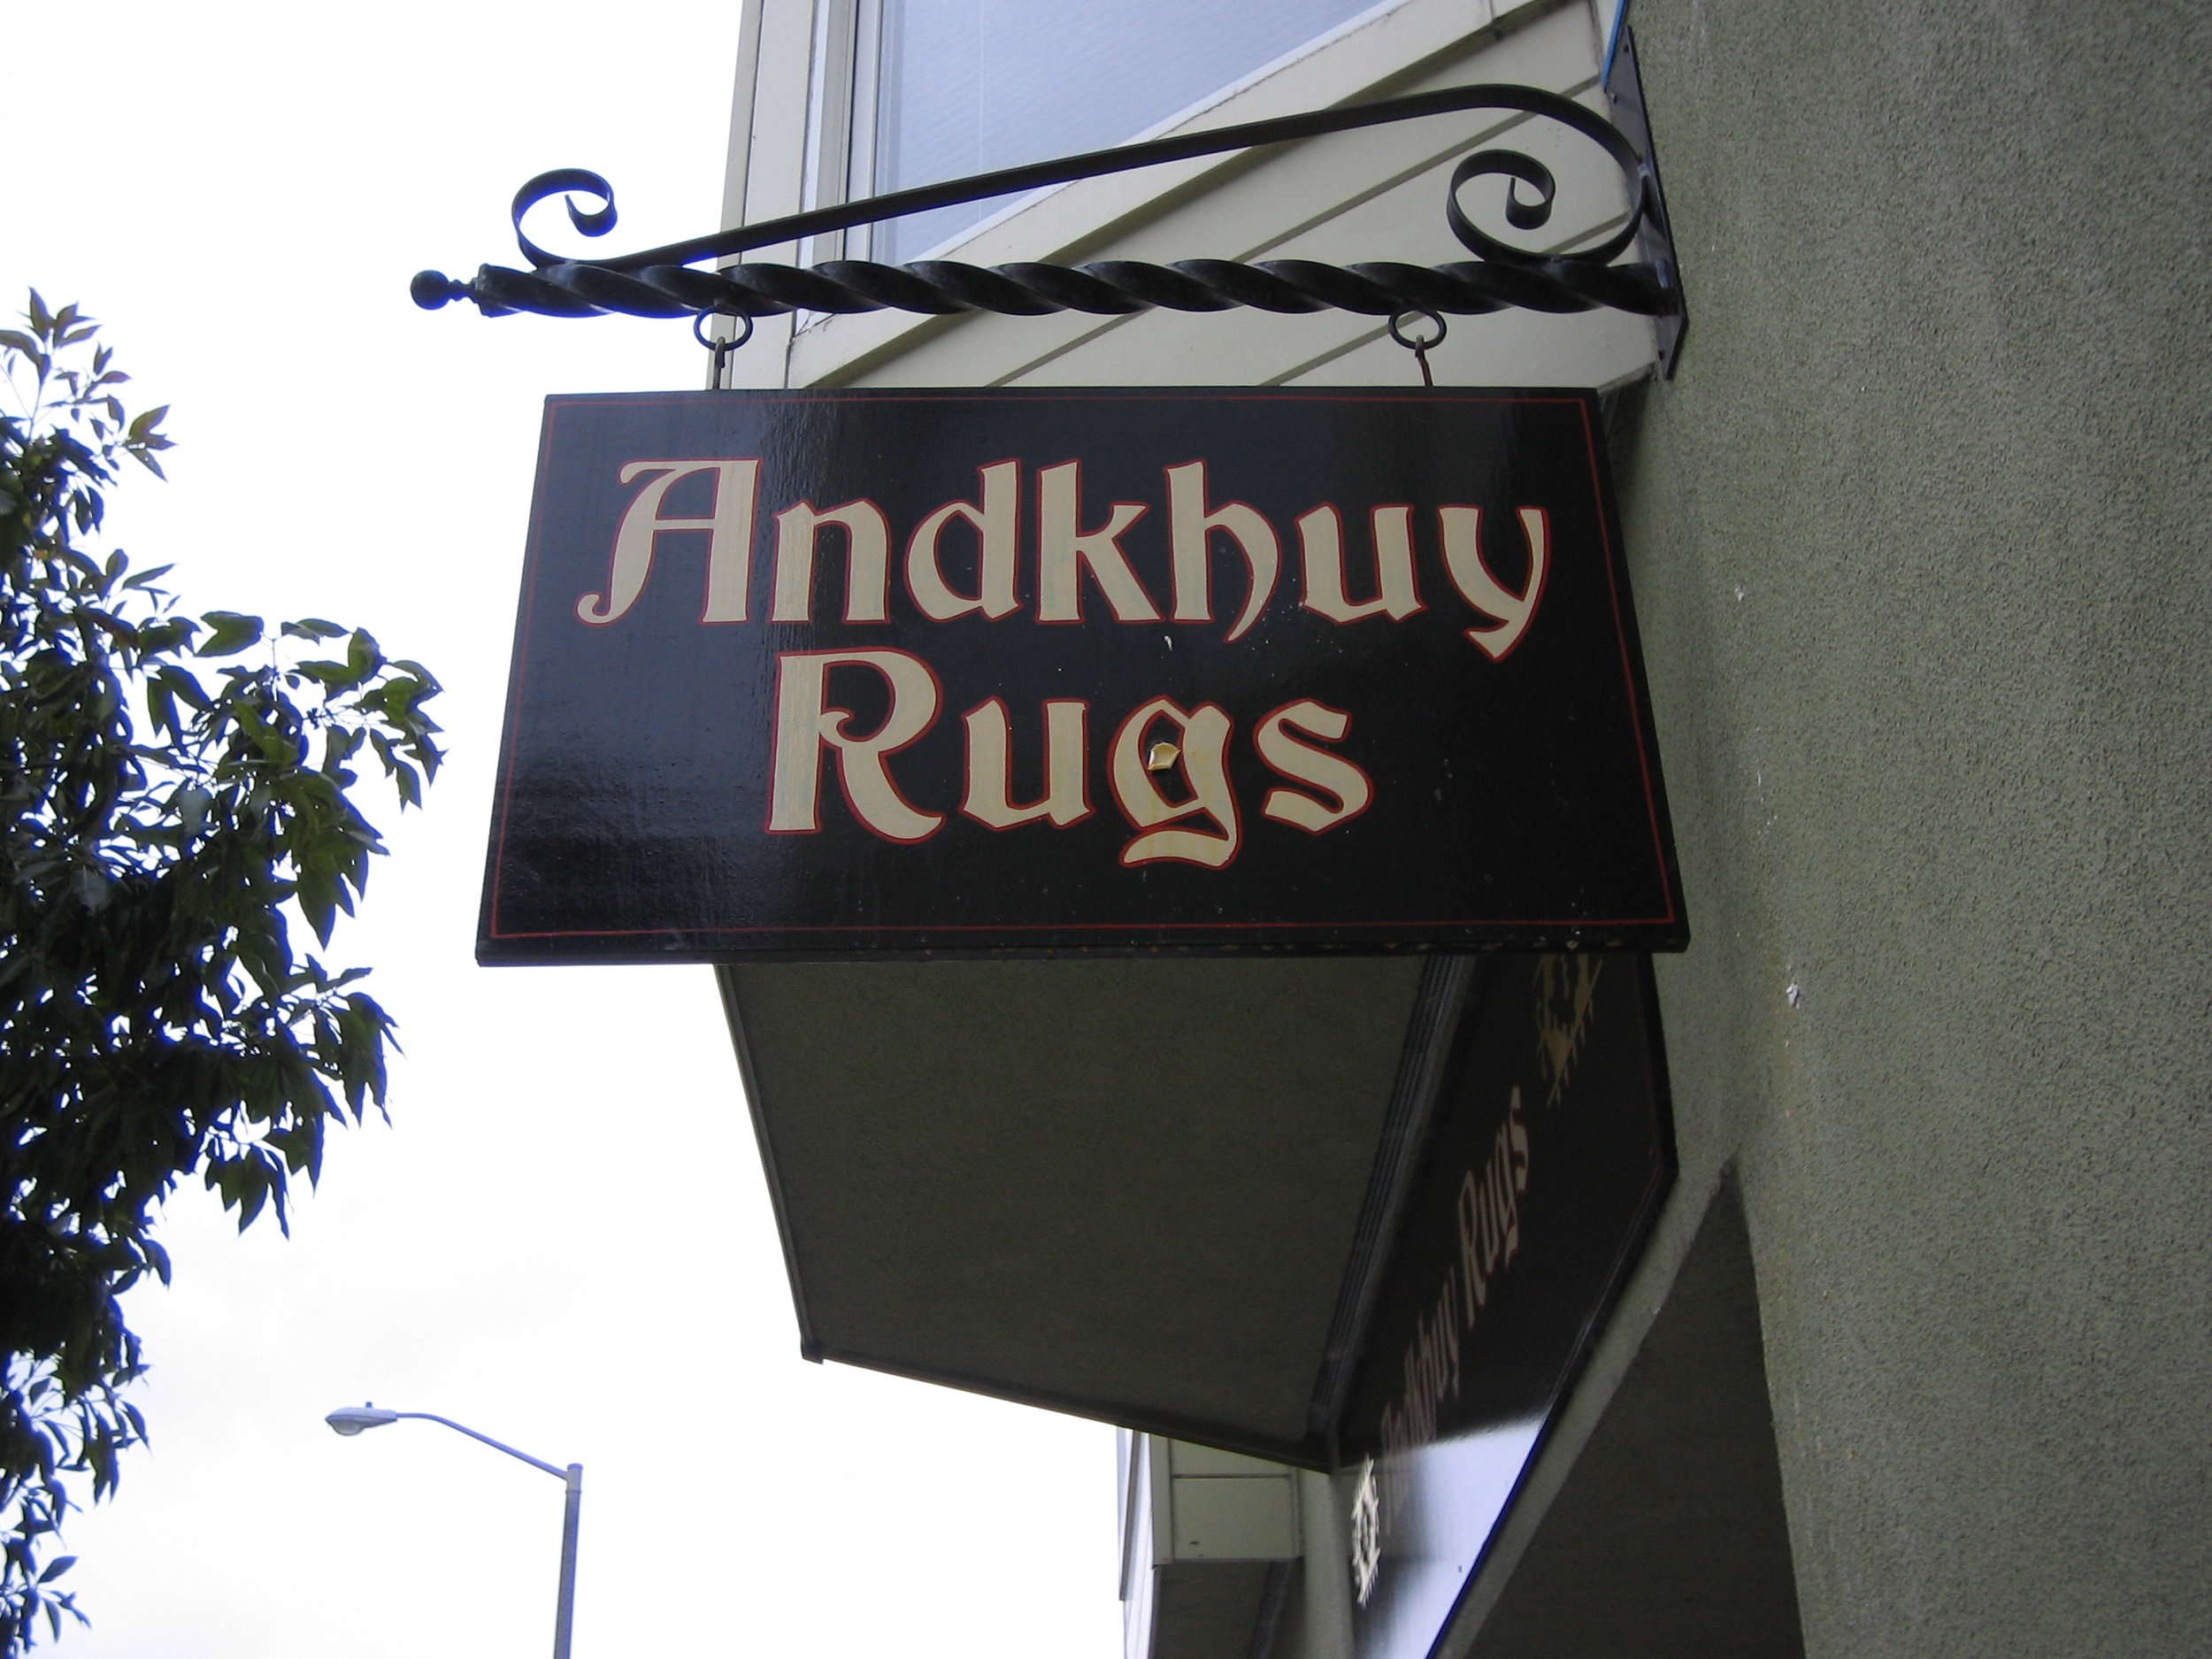 HAND-andkhuy-rugs-projecting-sign_3161104147_o.jpg